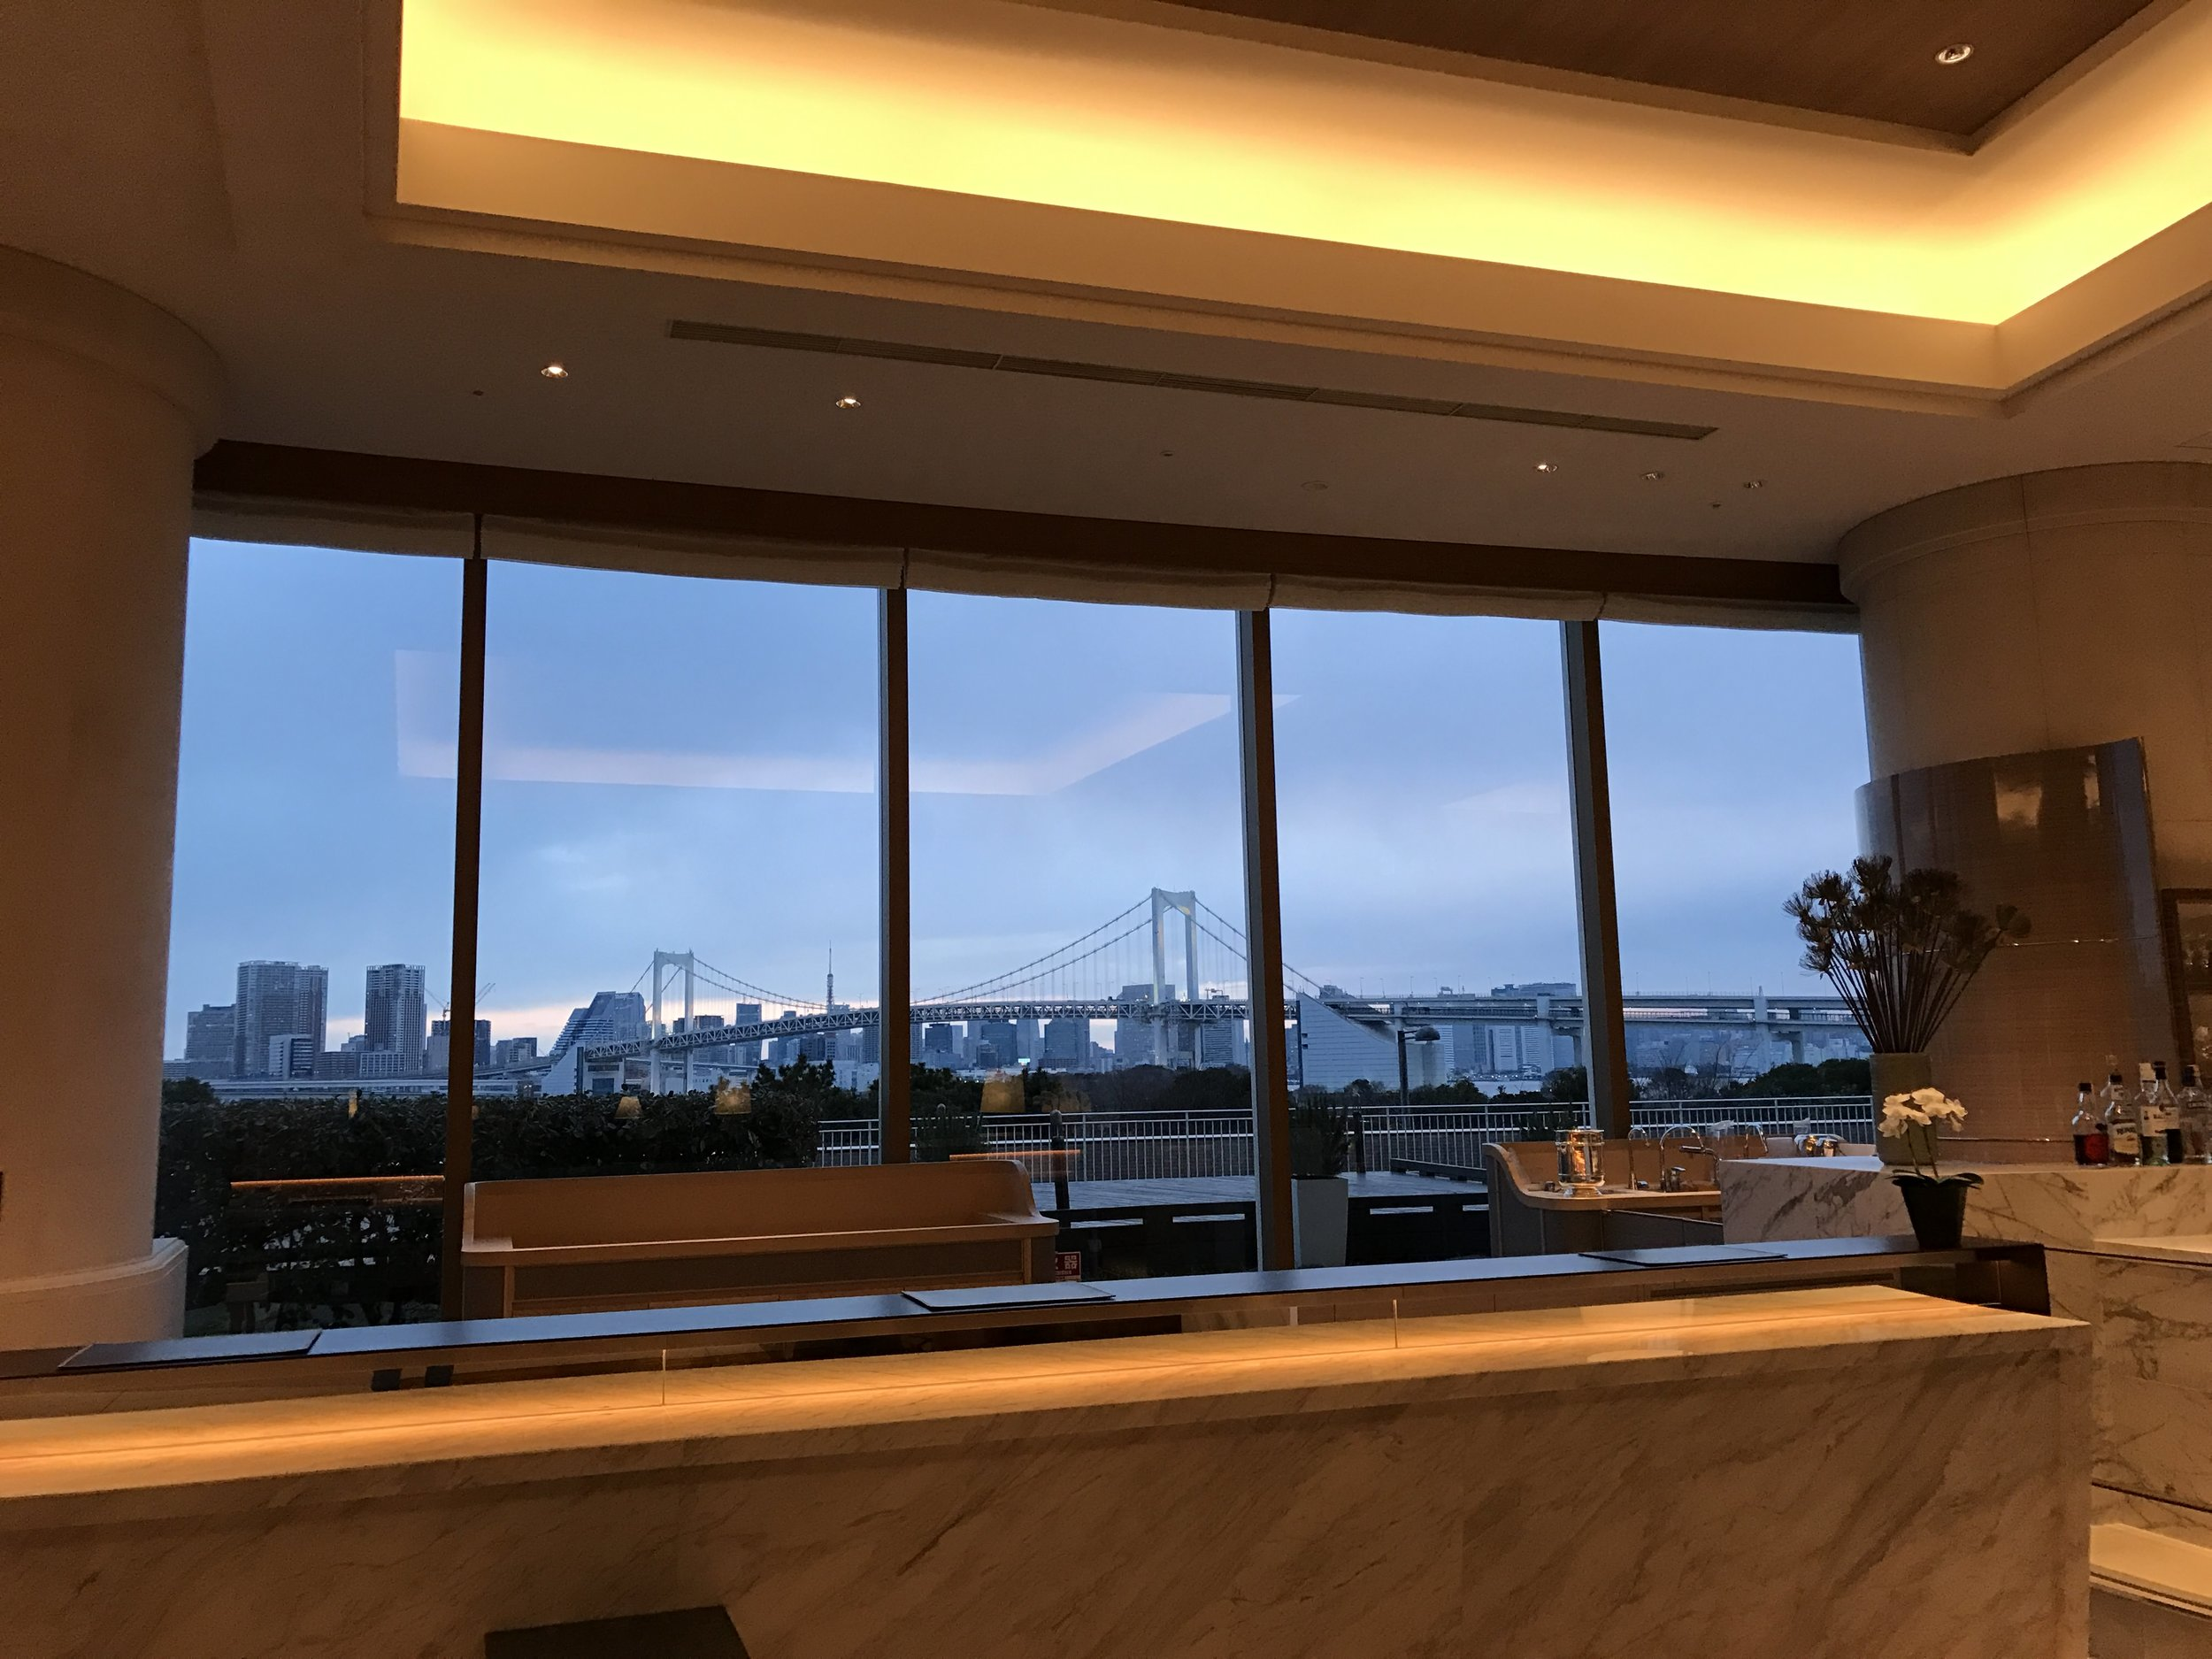 How dreamy is this backdrop? The Check in Desk offers panoramic views of the bay and Rainbow bridge